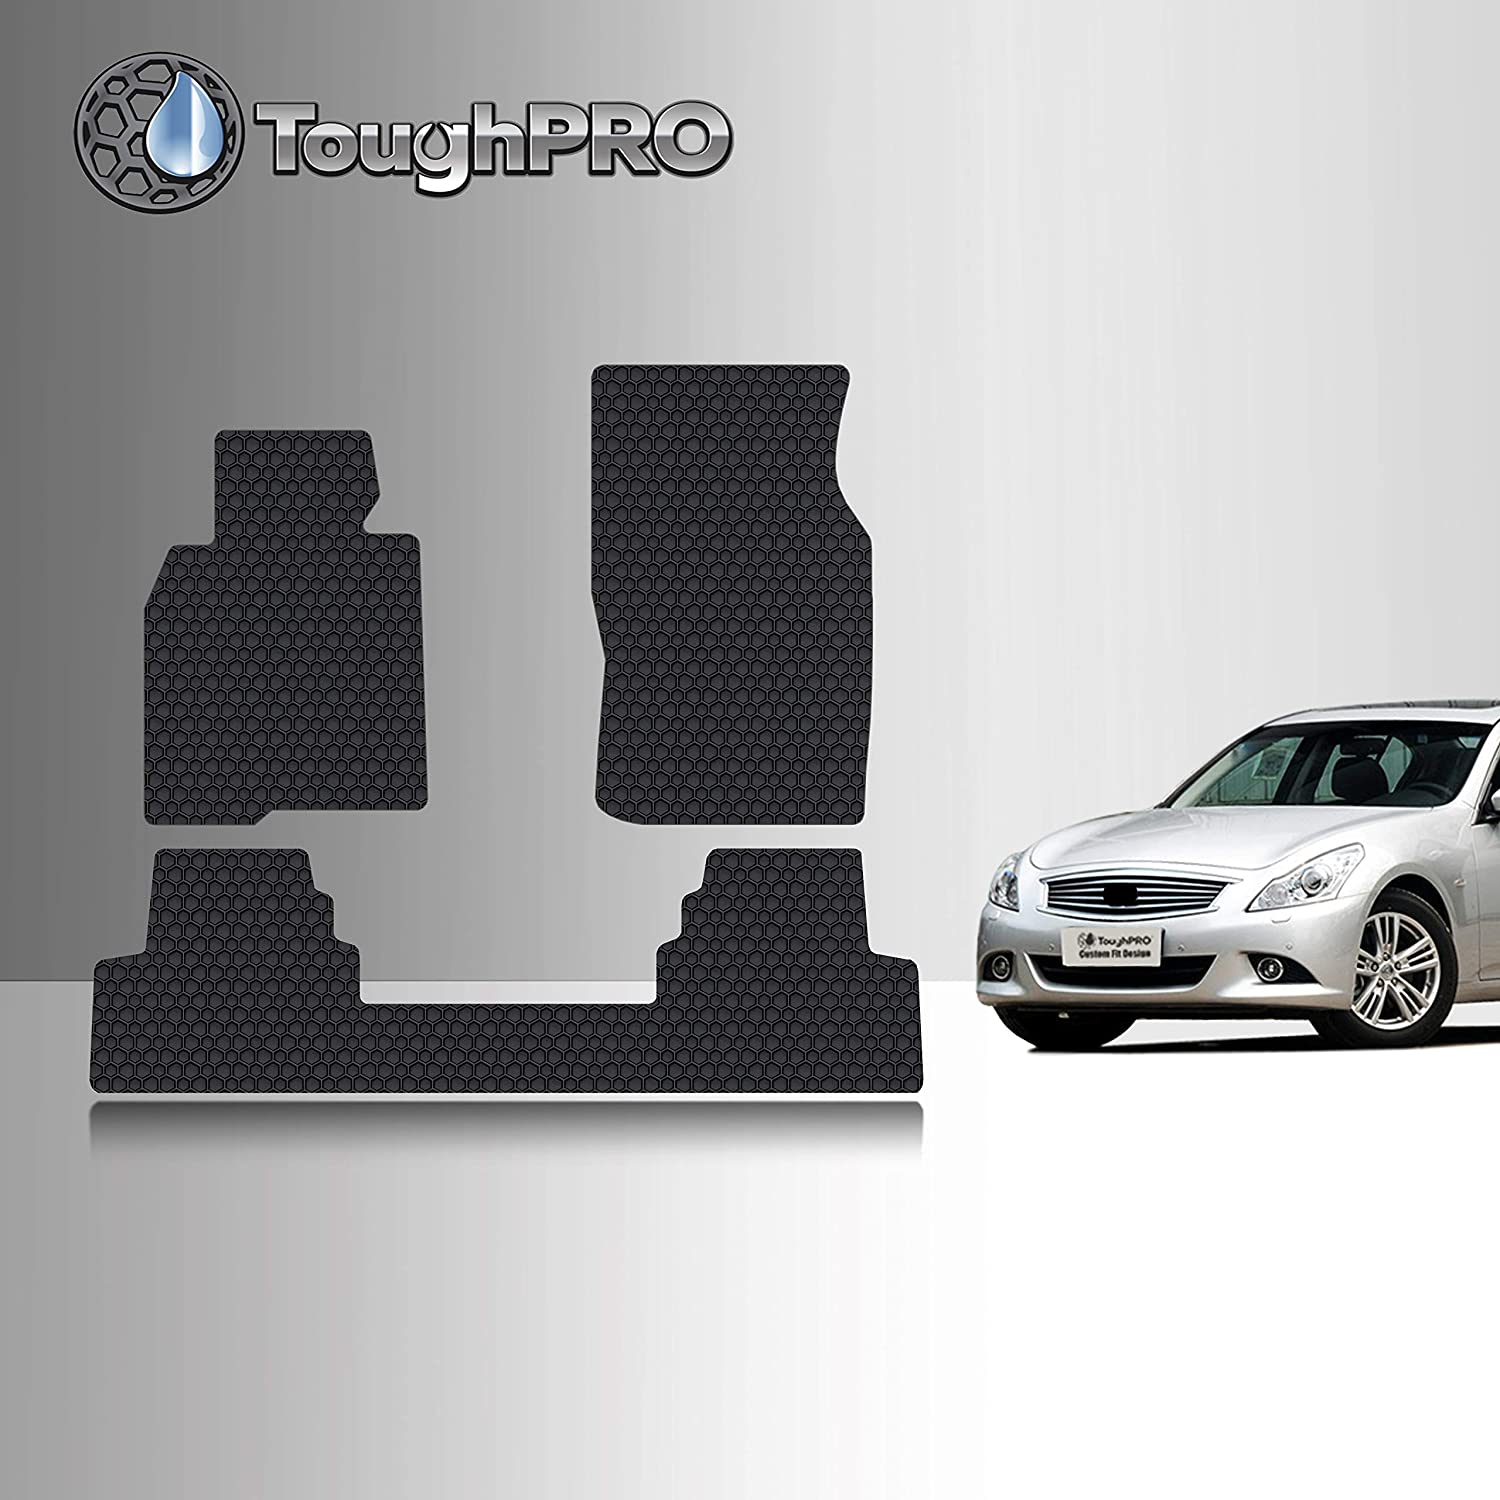 TOUGHPRO Floor Mat Accessories Set (Front Row + 2nd Row) Compatible with Infiniti G35 (Sedan Only) - All Weather - Heavy Duty - (Made in USA) - Black Rubber - 2007, 2008